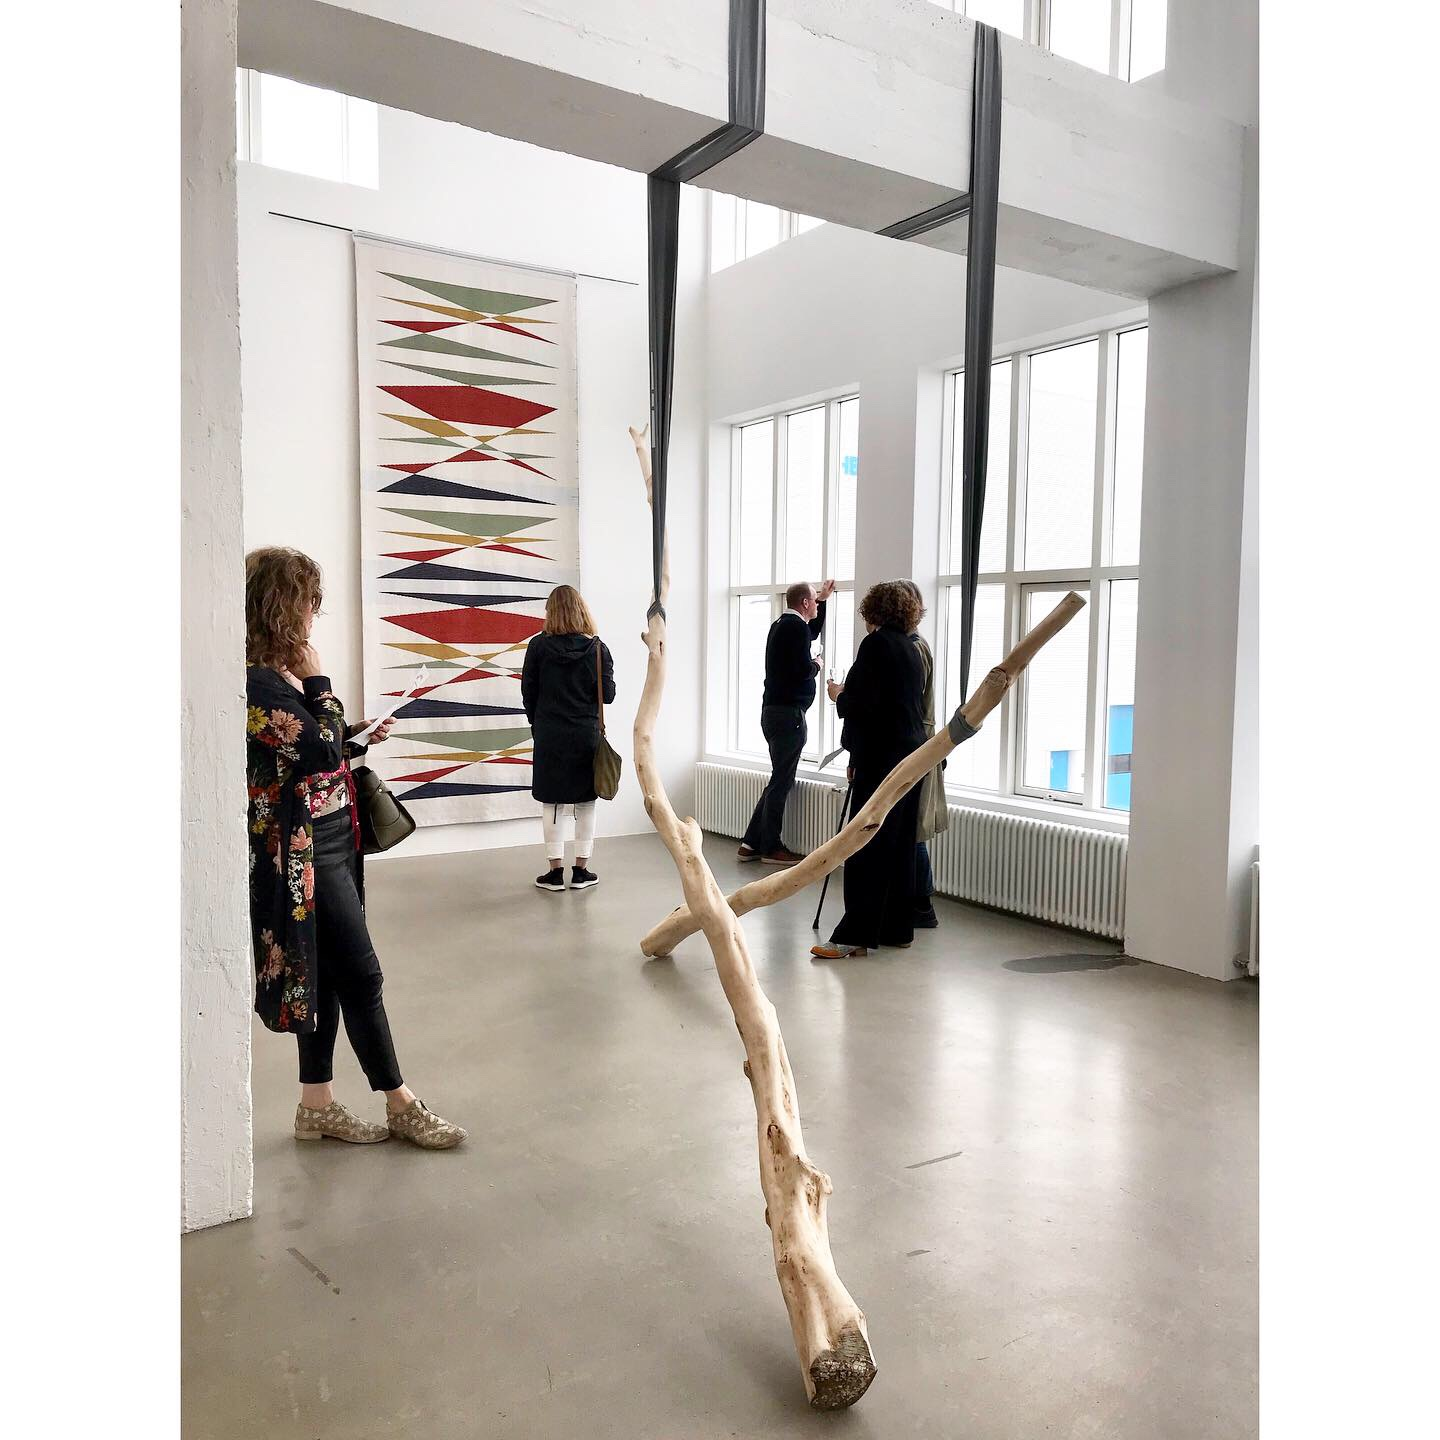 Birch and Tapestry Expo_Katrina Jane Perry 2019.JPG